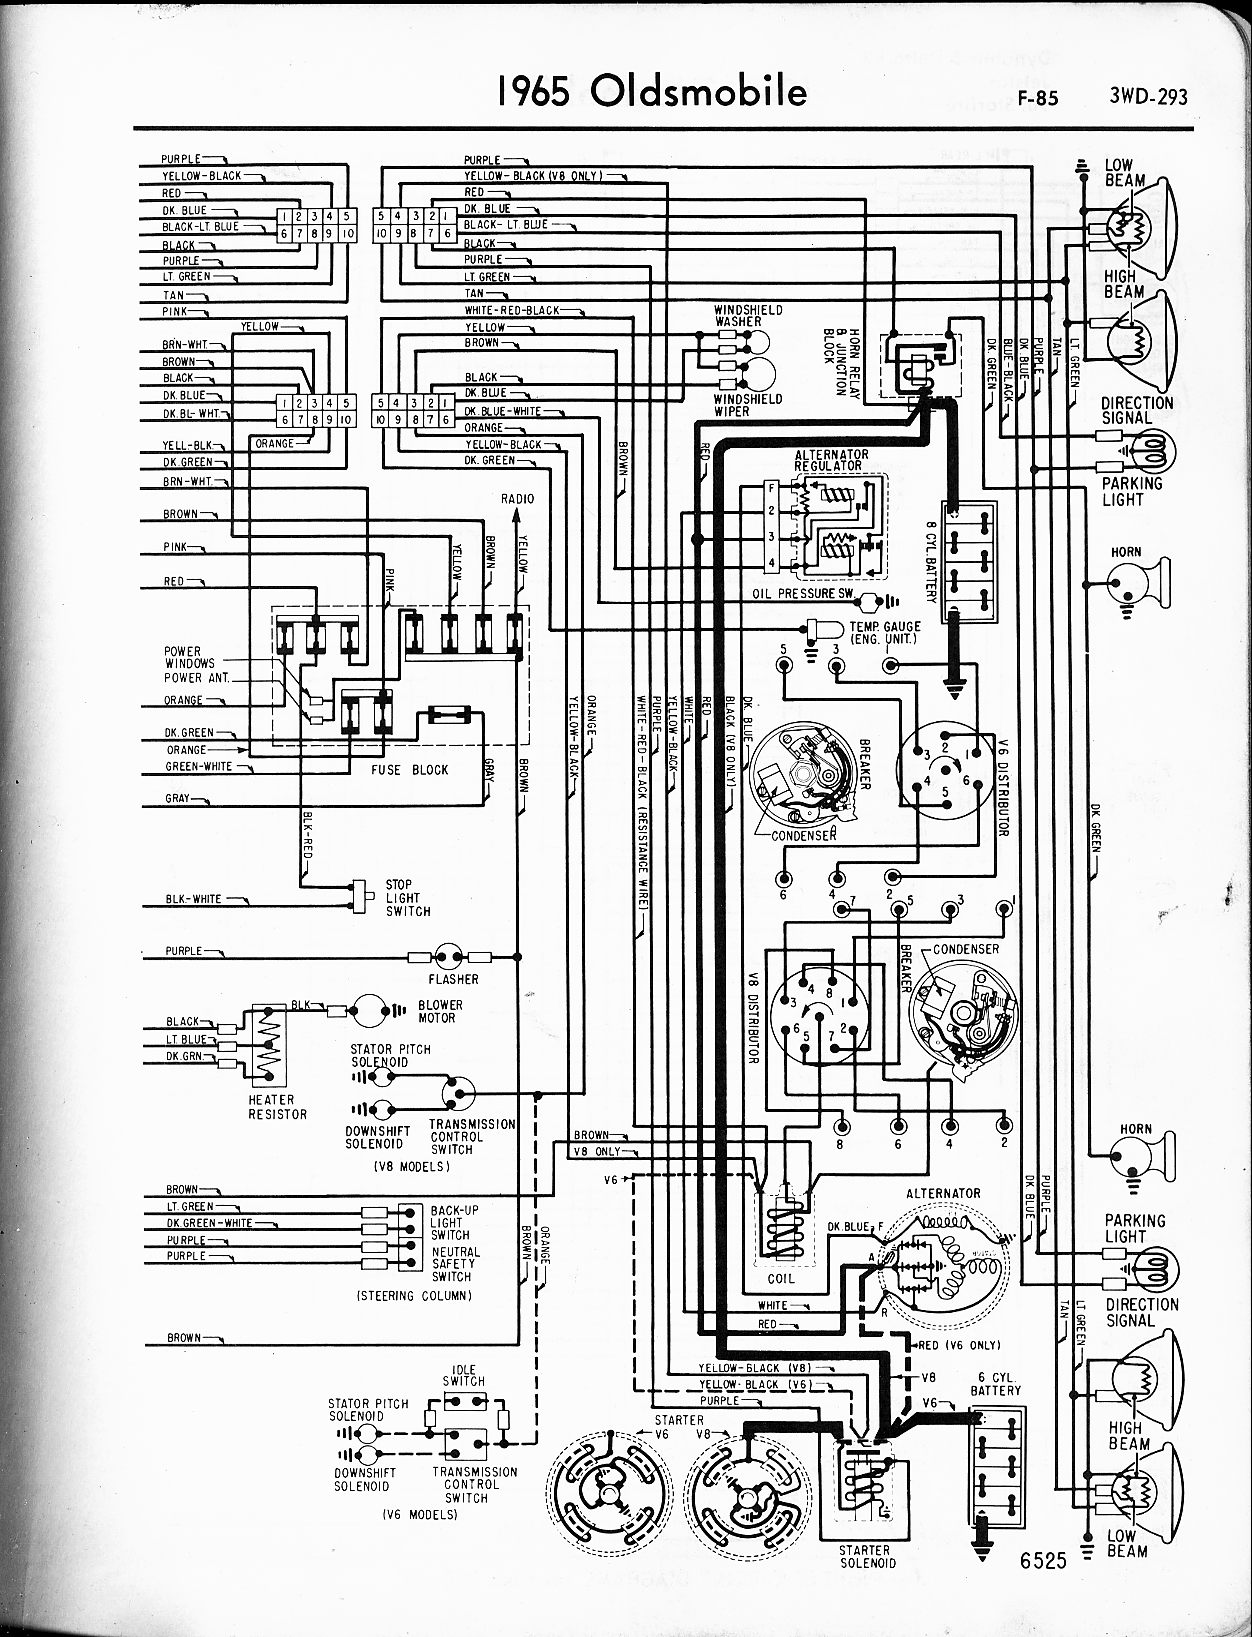 MWire5765 293 oldsmobile wiring diagrams the old car manual project Freightliner Power Window Wiring Diagram at alyssarenee.co